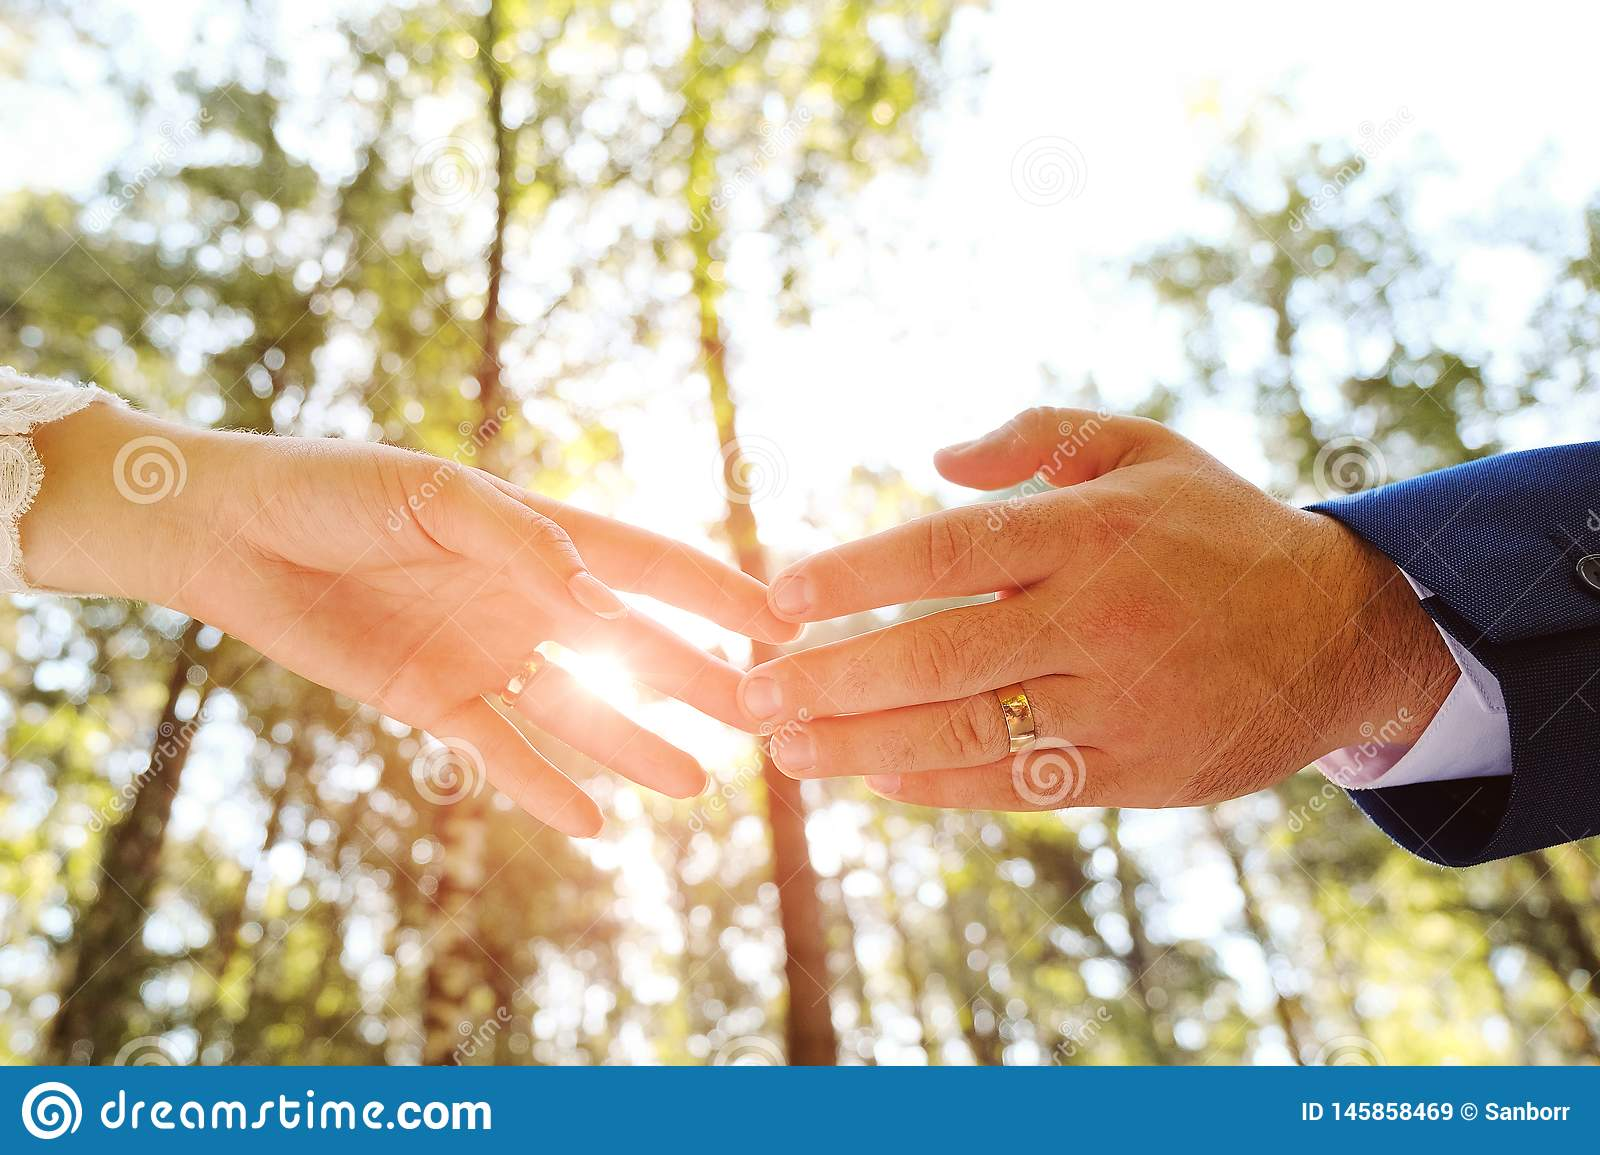 The bride and groom holding hands in the Park or forest.In the hands of a wedding ring. The sun shines. Close up